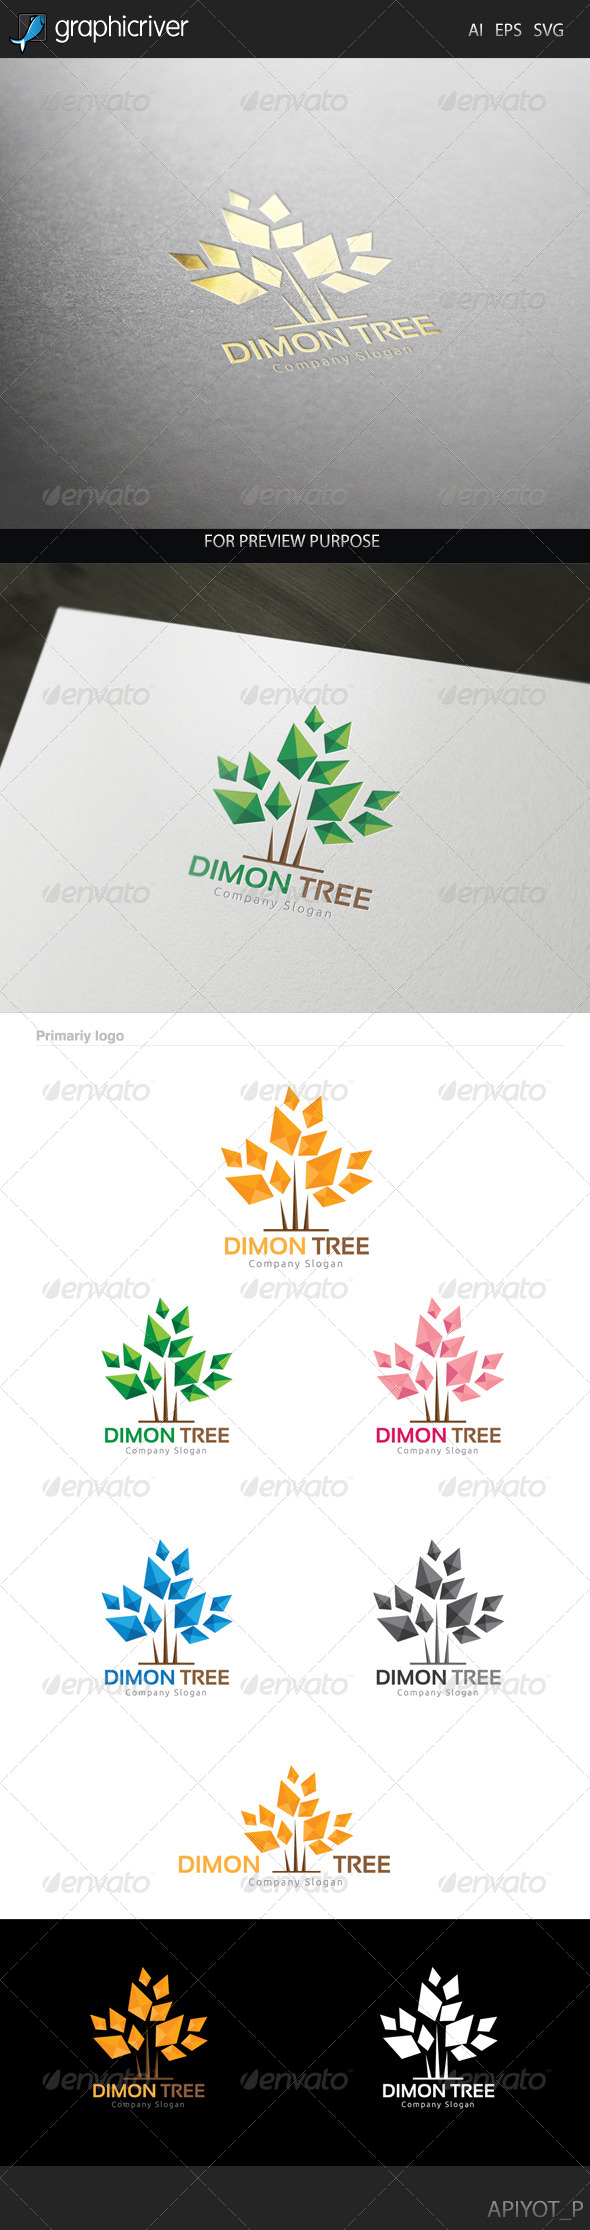 GraphicRiver Dimon Tree Logo 8228934